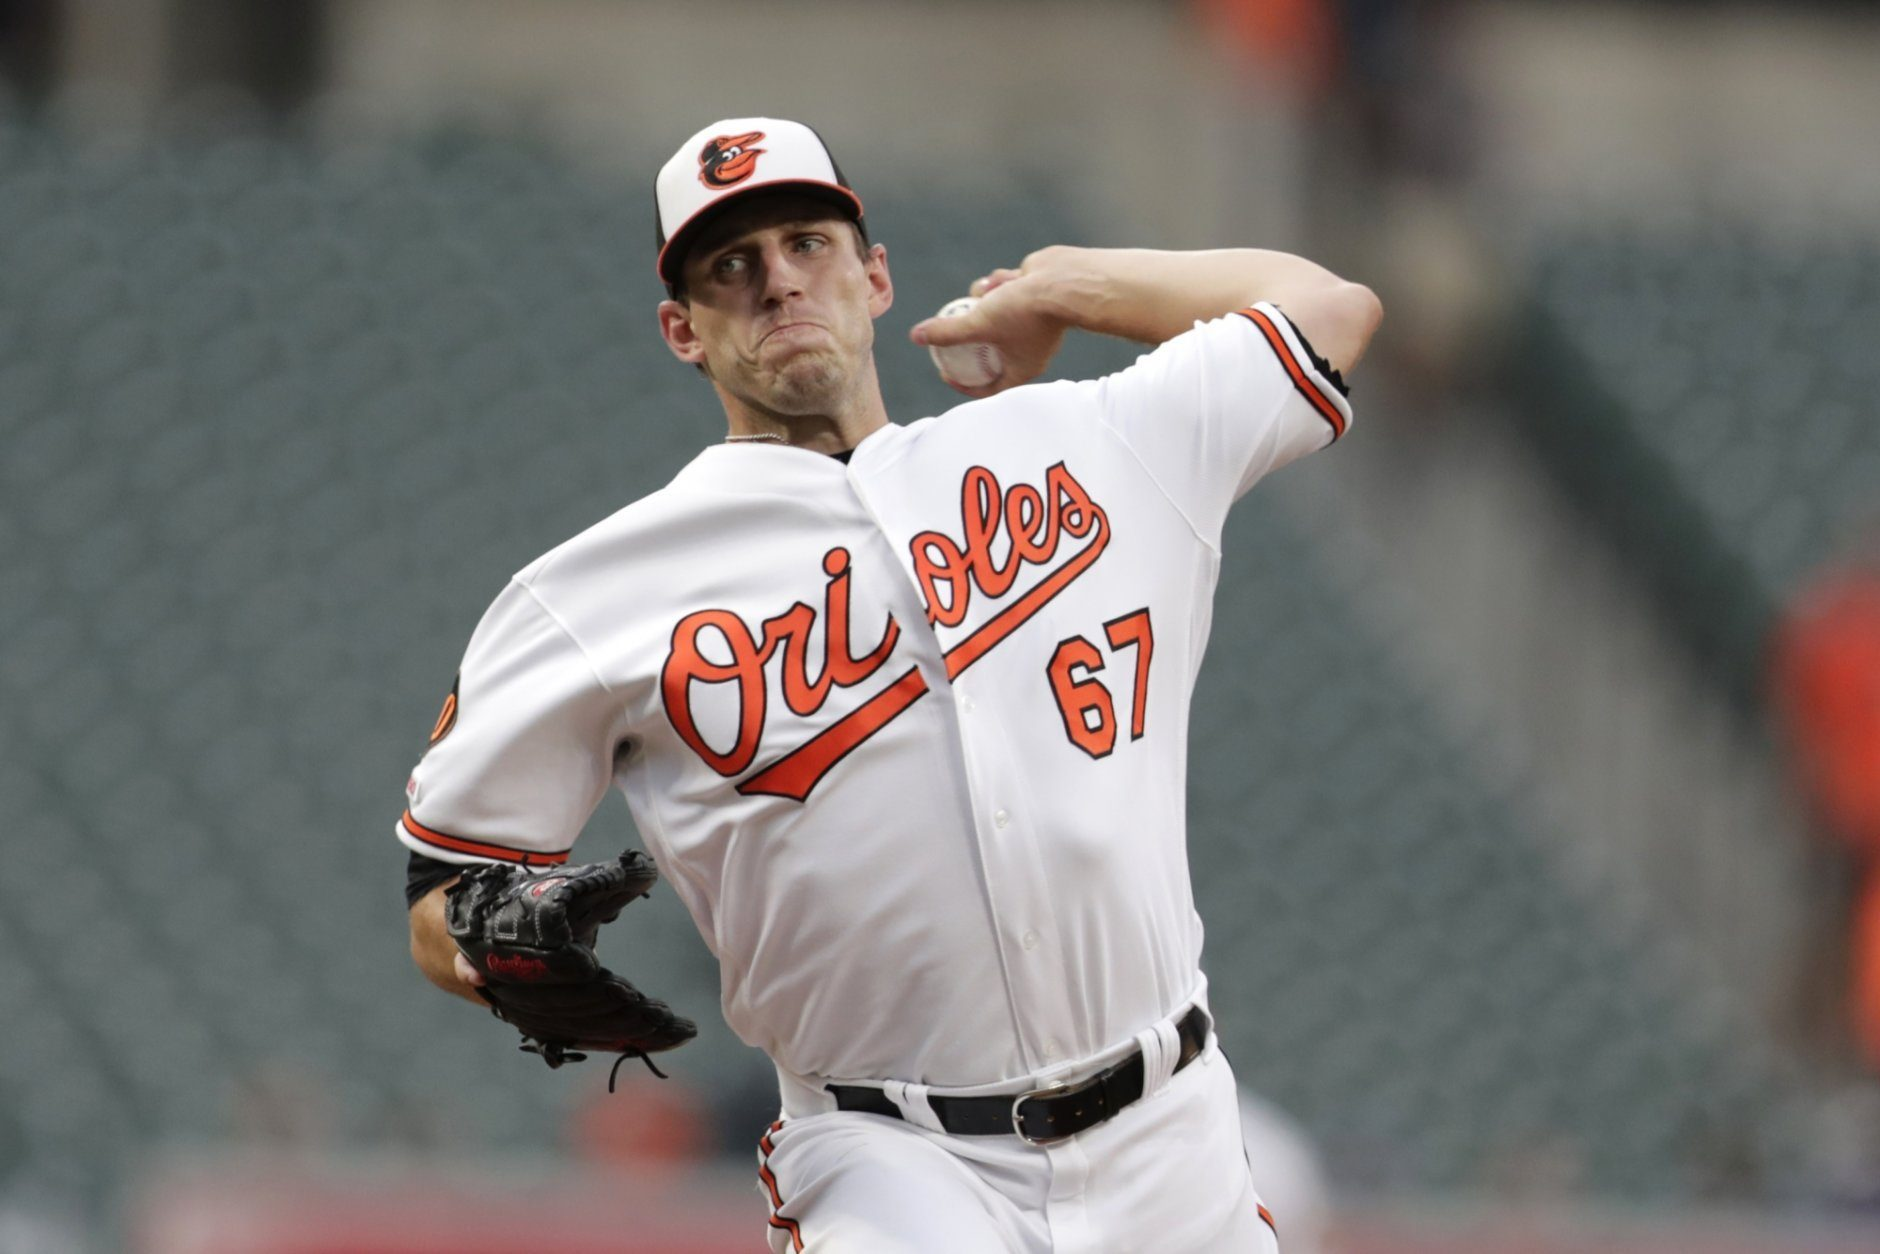 Baltimore Orioles starting pitcher John Means throws a pitch to a Kansas City Royals batter during the first inning of a baseball game, Monday, Aug. 19, 2019, in Baltimore. (AP Photo/Julio Cortez)